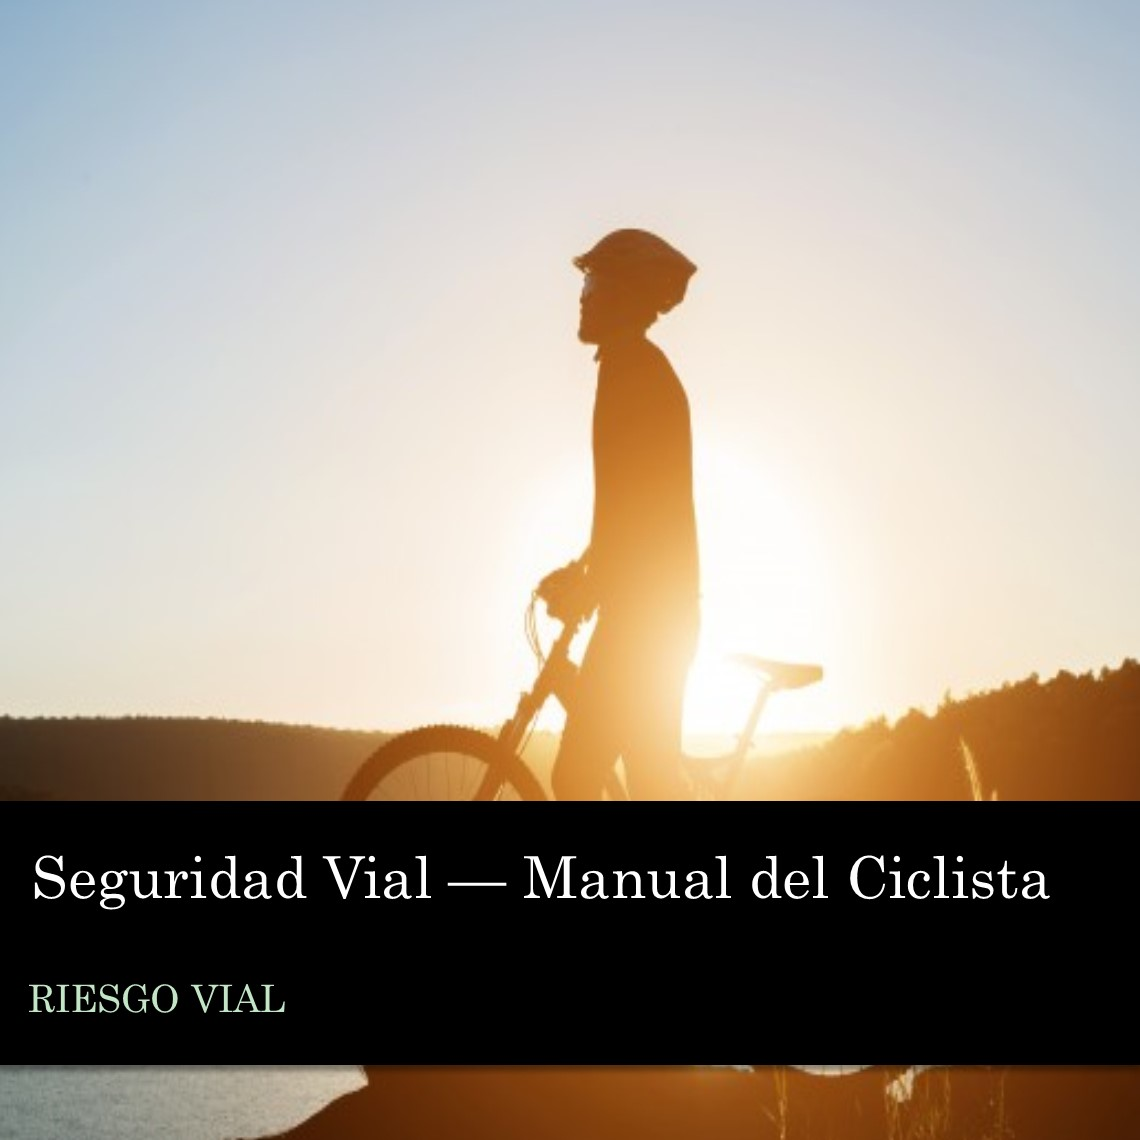 Seguridad Vial - Manual del Ciclista